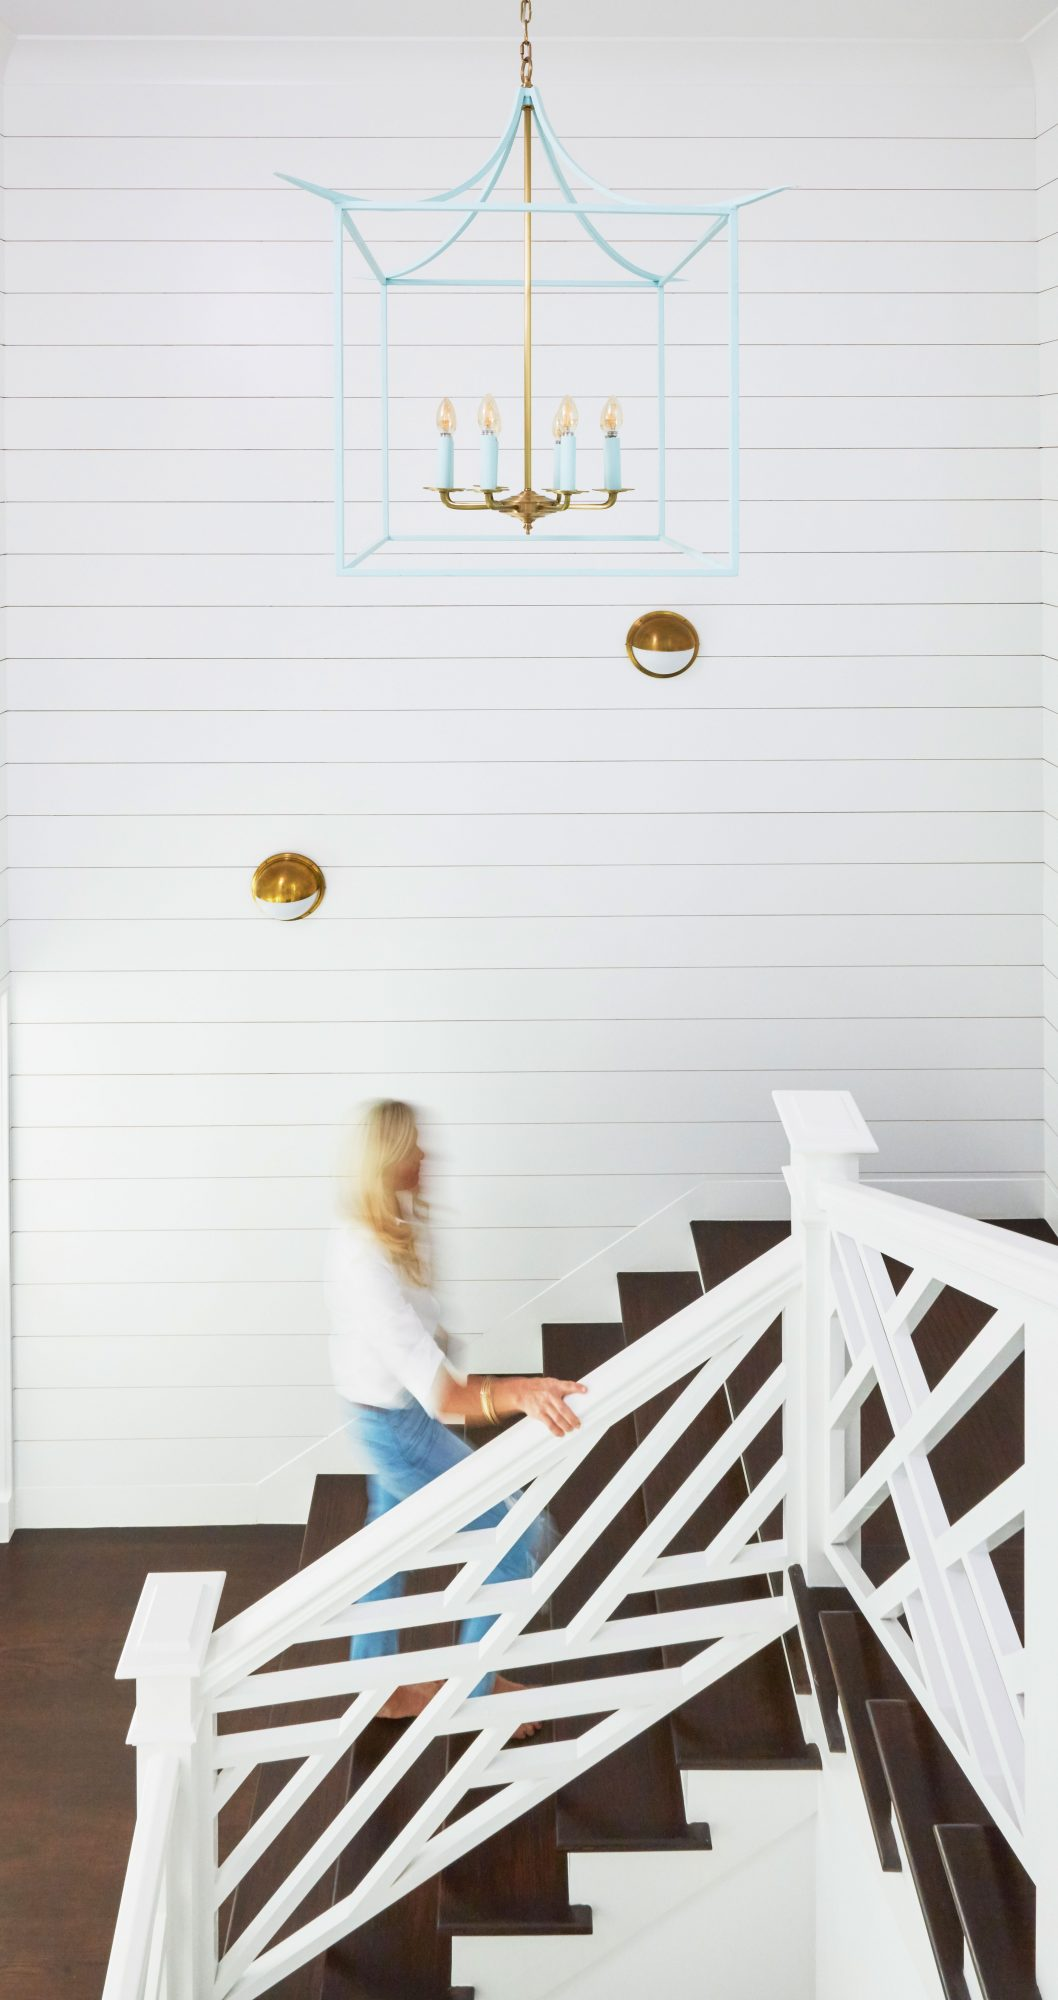 Staircase with White Wood Paneled Wall and Gold Light Fixtures